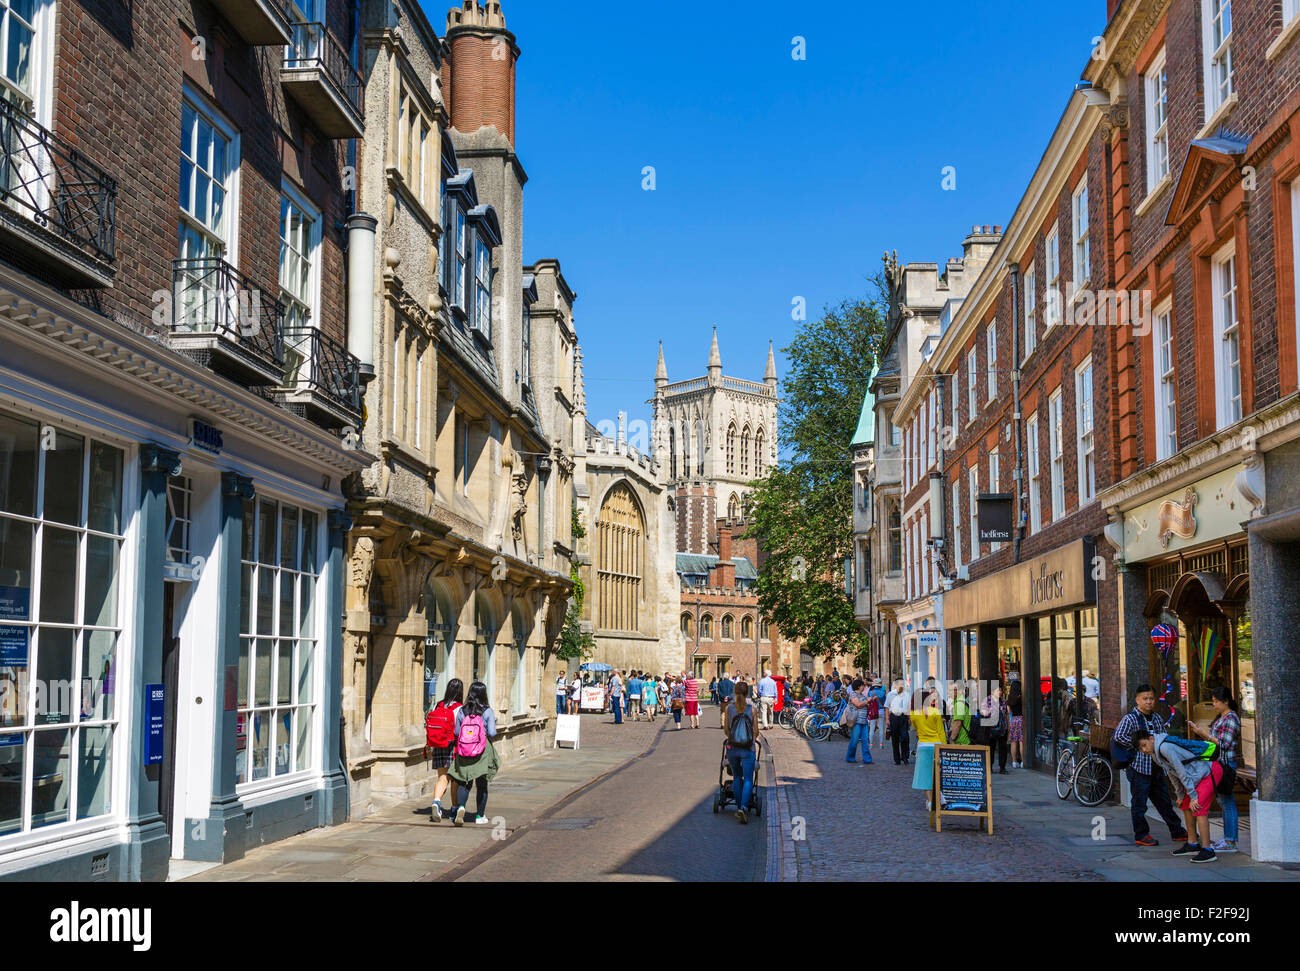 Trinity Street in the city centre, Cambridge, Cambridgeshire, England, UK - Stock Image